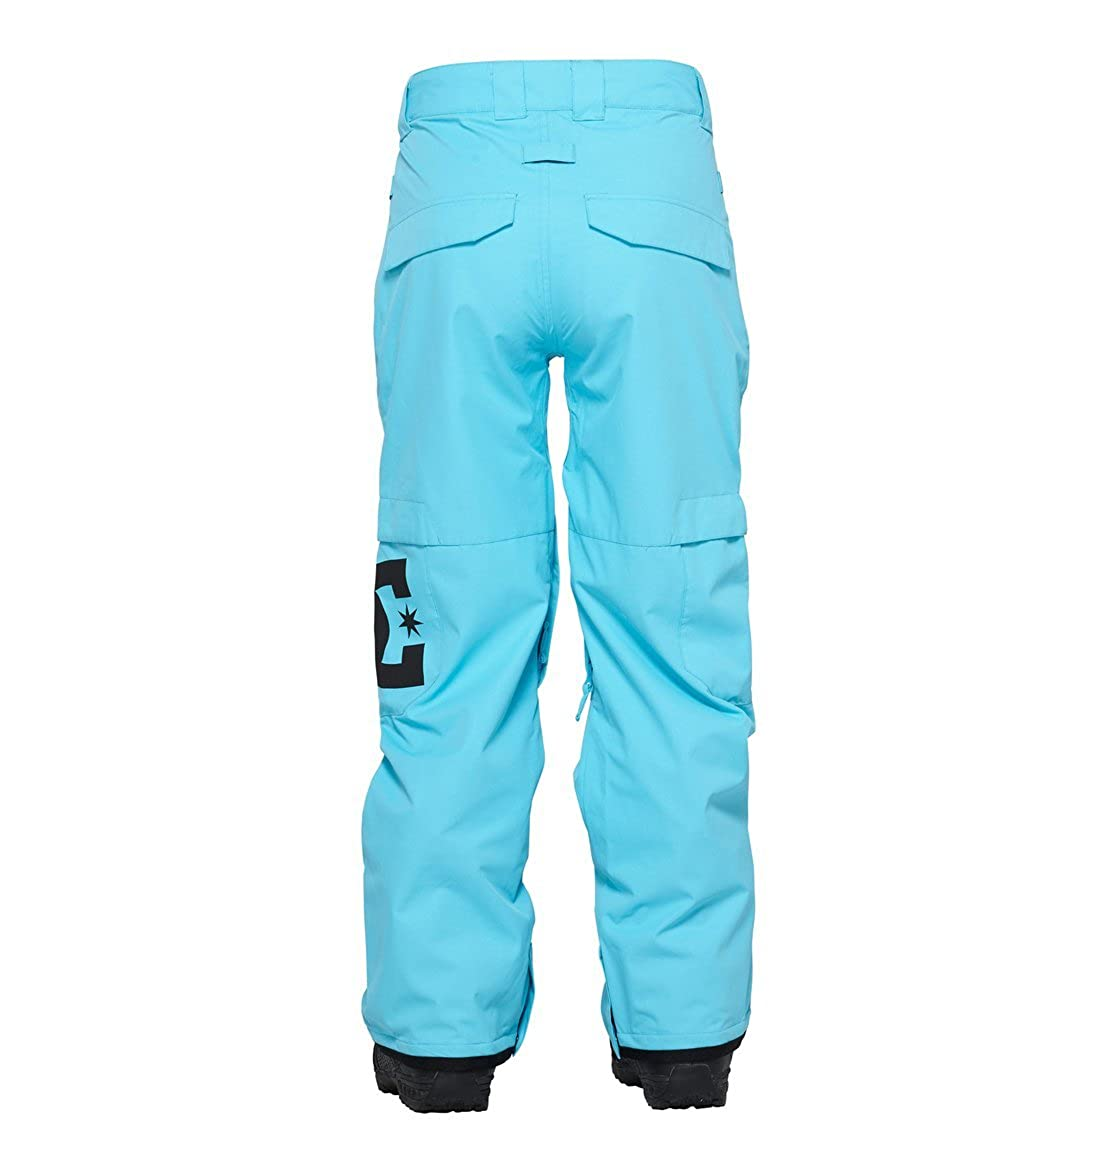 68ce0571f Amazon.com  DC Apparel - Kids Factor K Pant  Snowboarding Pants ...